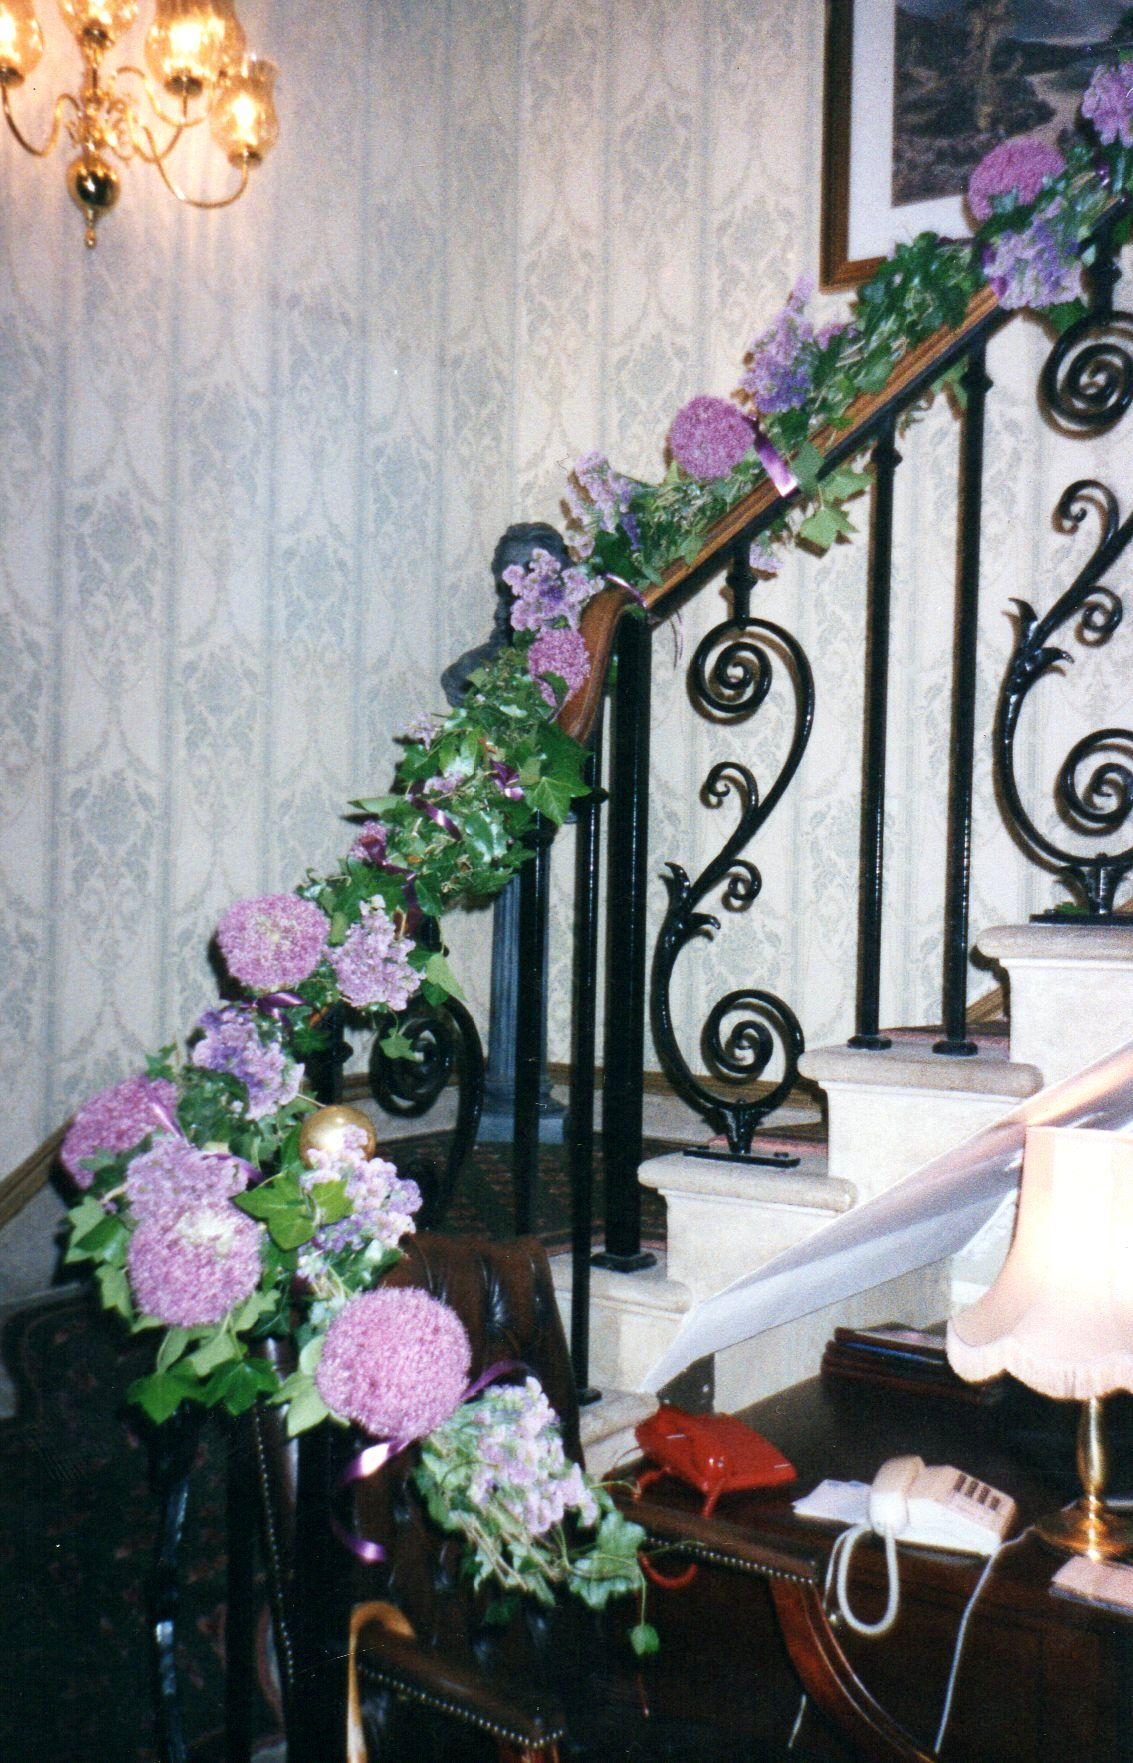 Wedding at Montgreenan mansion house hotel. The